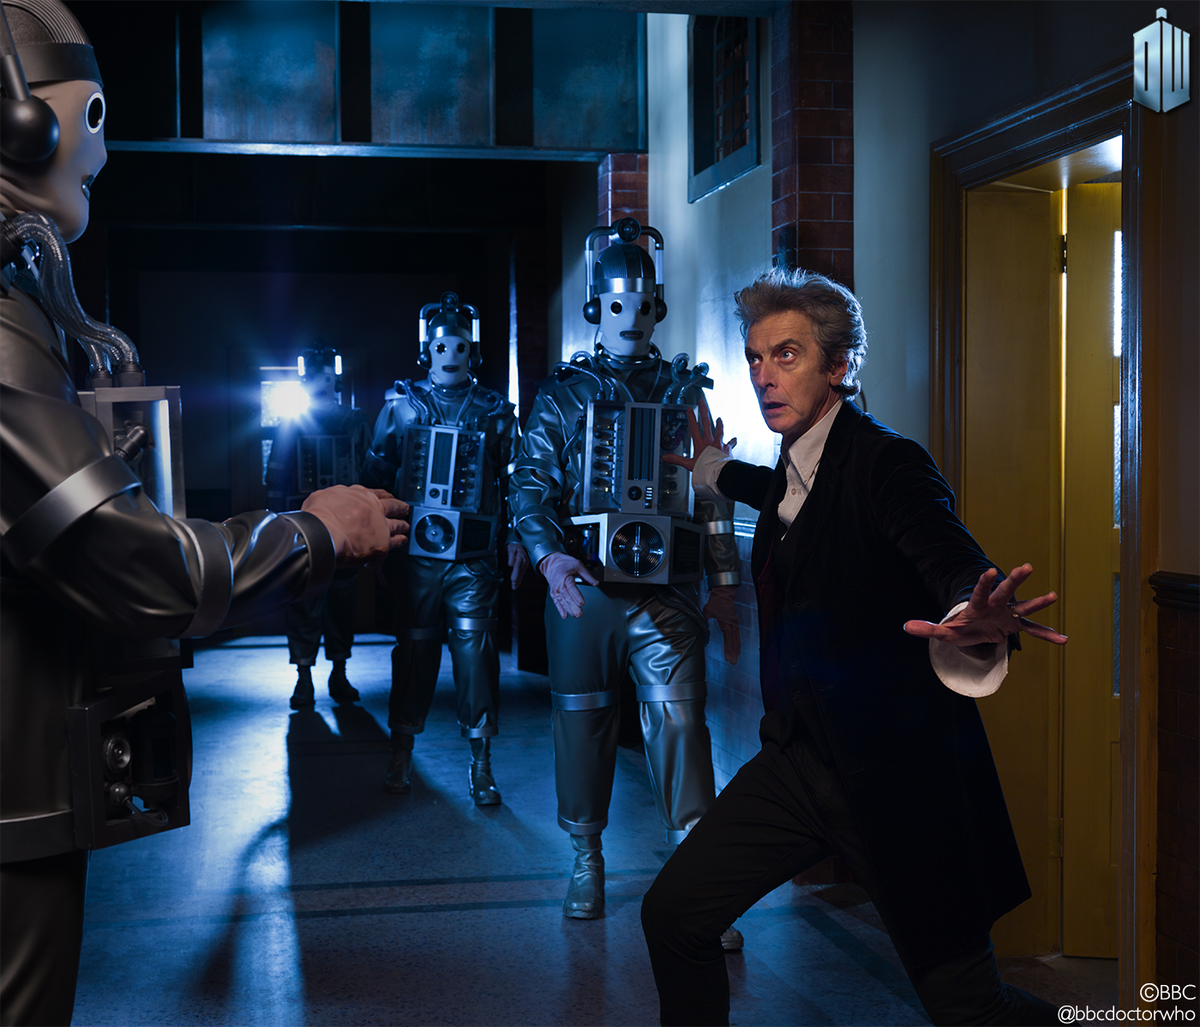 Guess who's back! It's the original Mondasian Cybermen, returning for eps 11 & 12 of the new series!  https://t.co/F6G9YQrVCb#DoctorWho